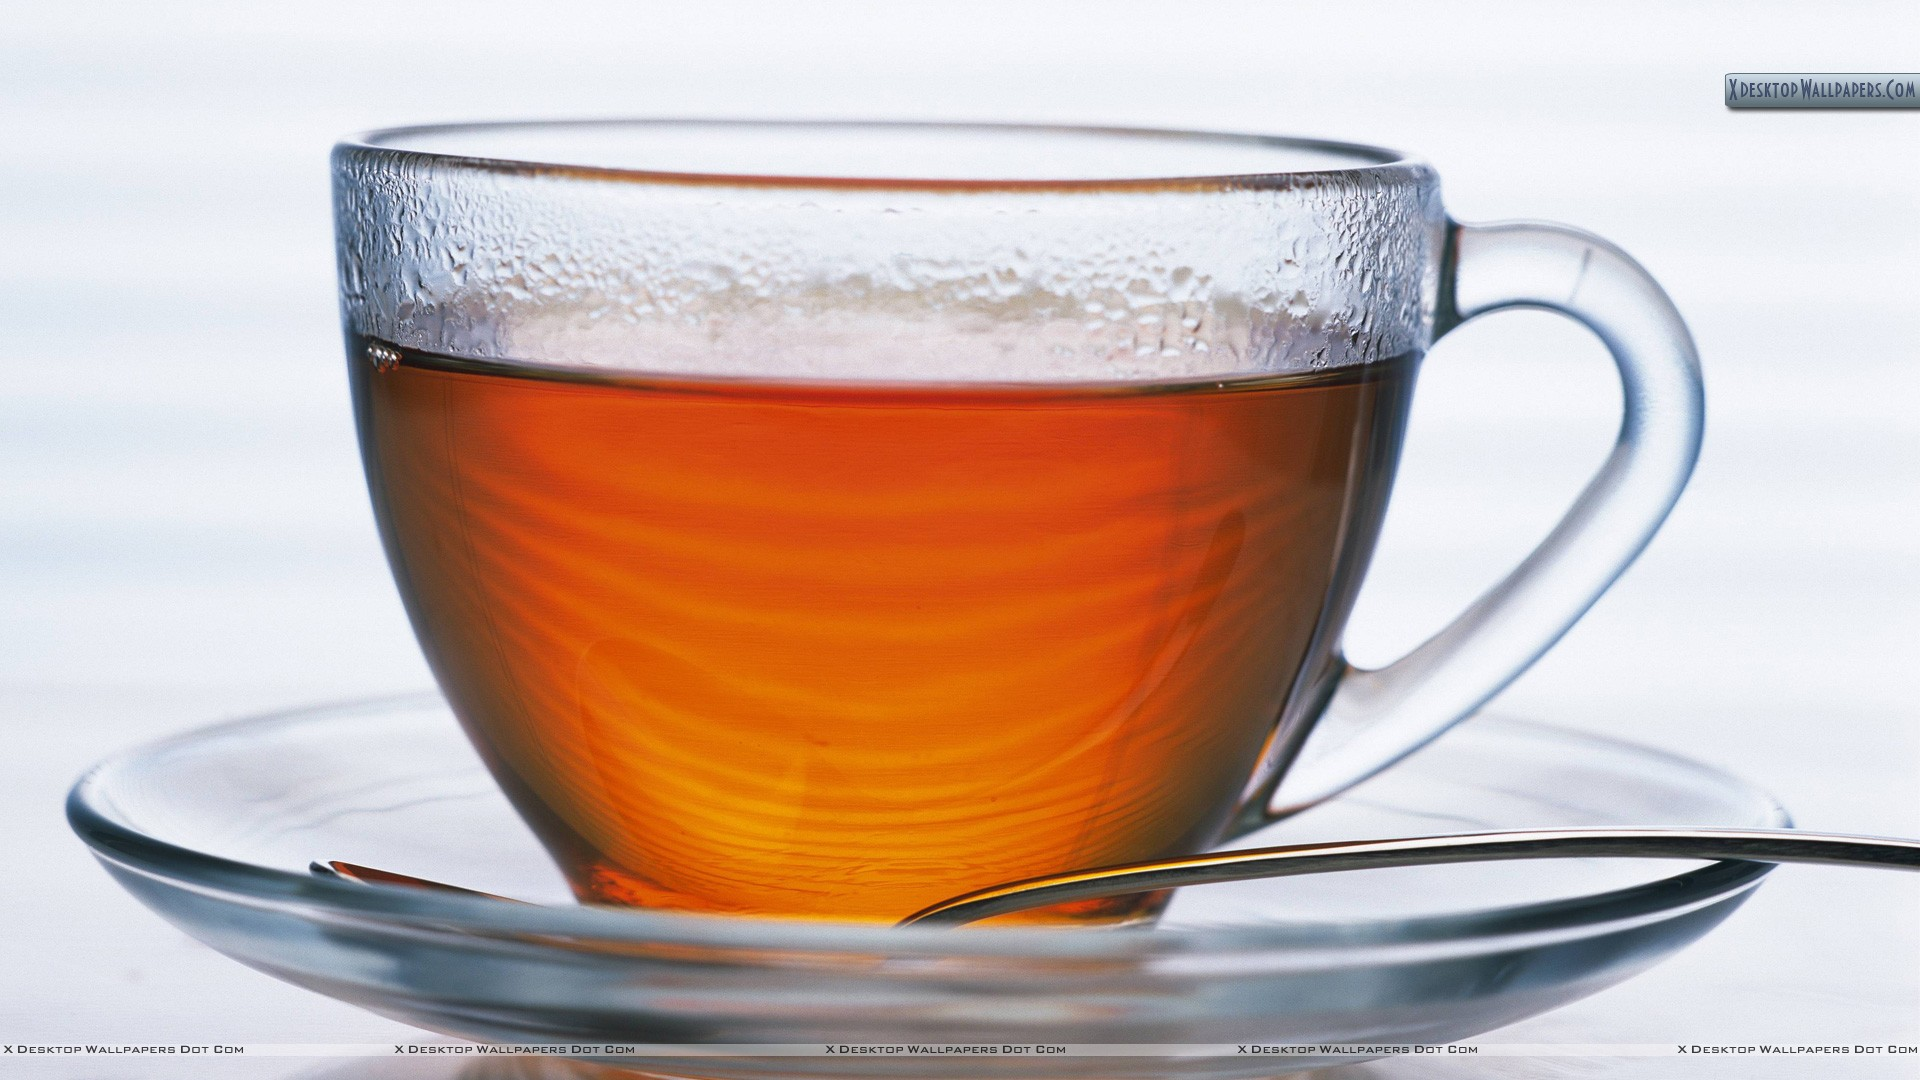 Cup of Tea in Morning Wallpaper 1920x1080